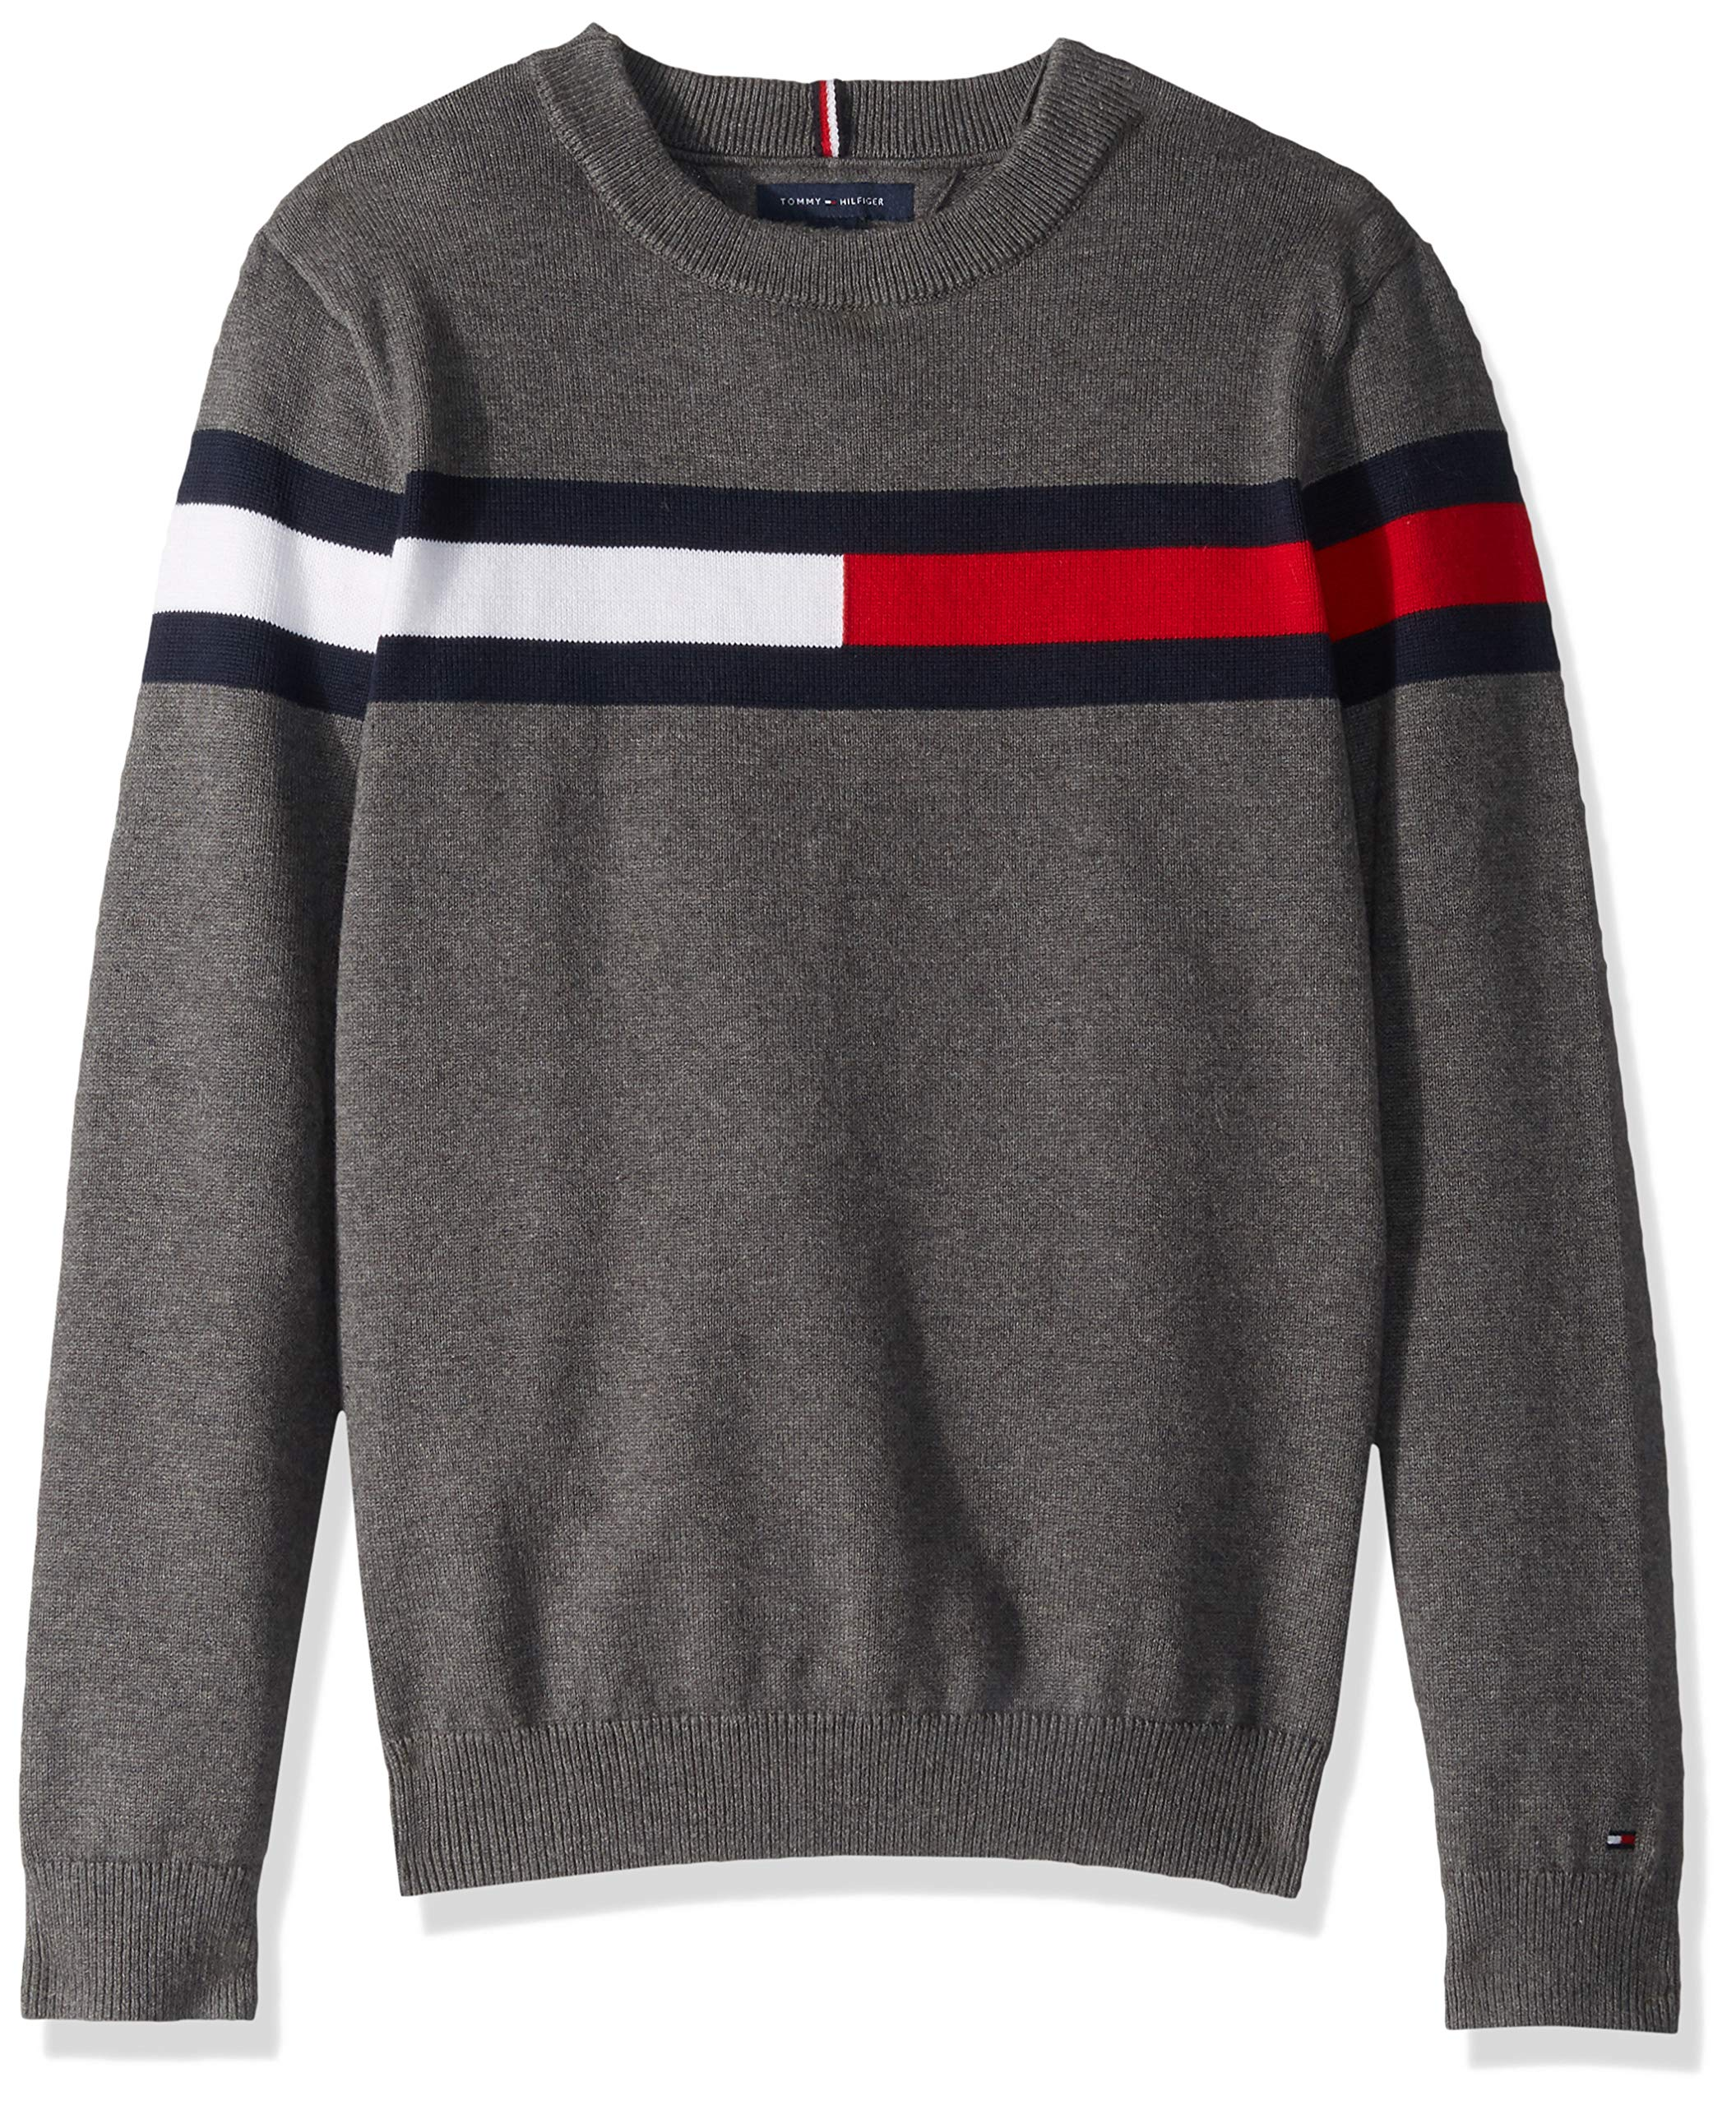 Tommy Hilfiger Boys' Adaptive Sweater with Hook and Loop Fastener at Shoulders, medium grey hear S